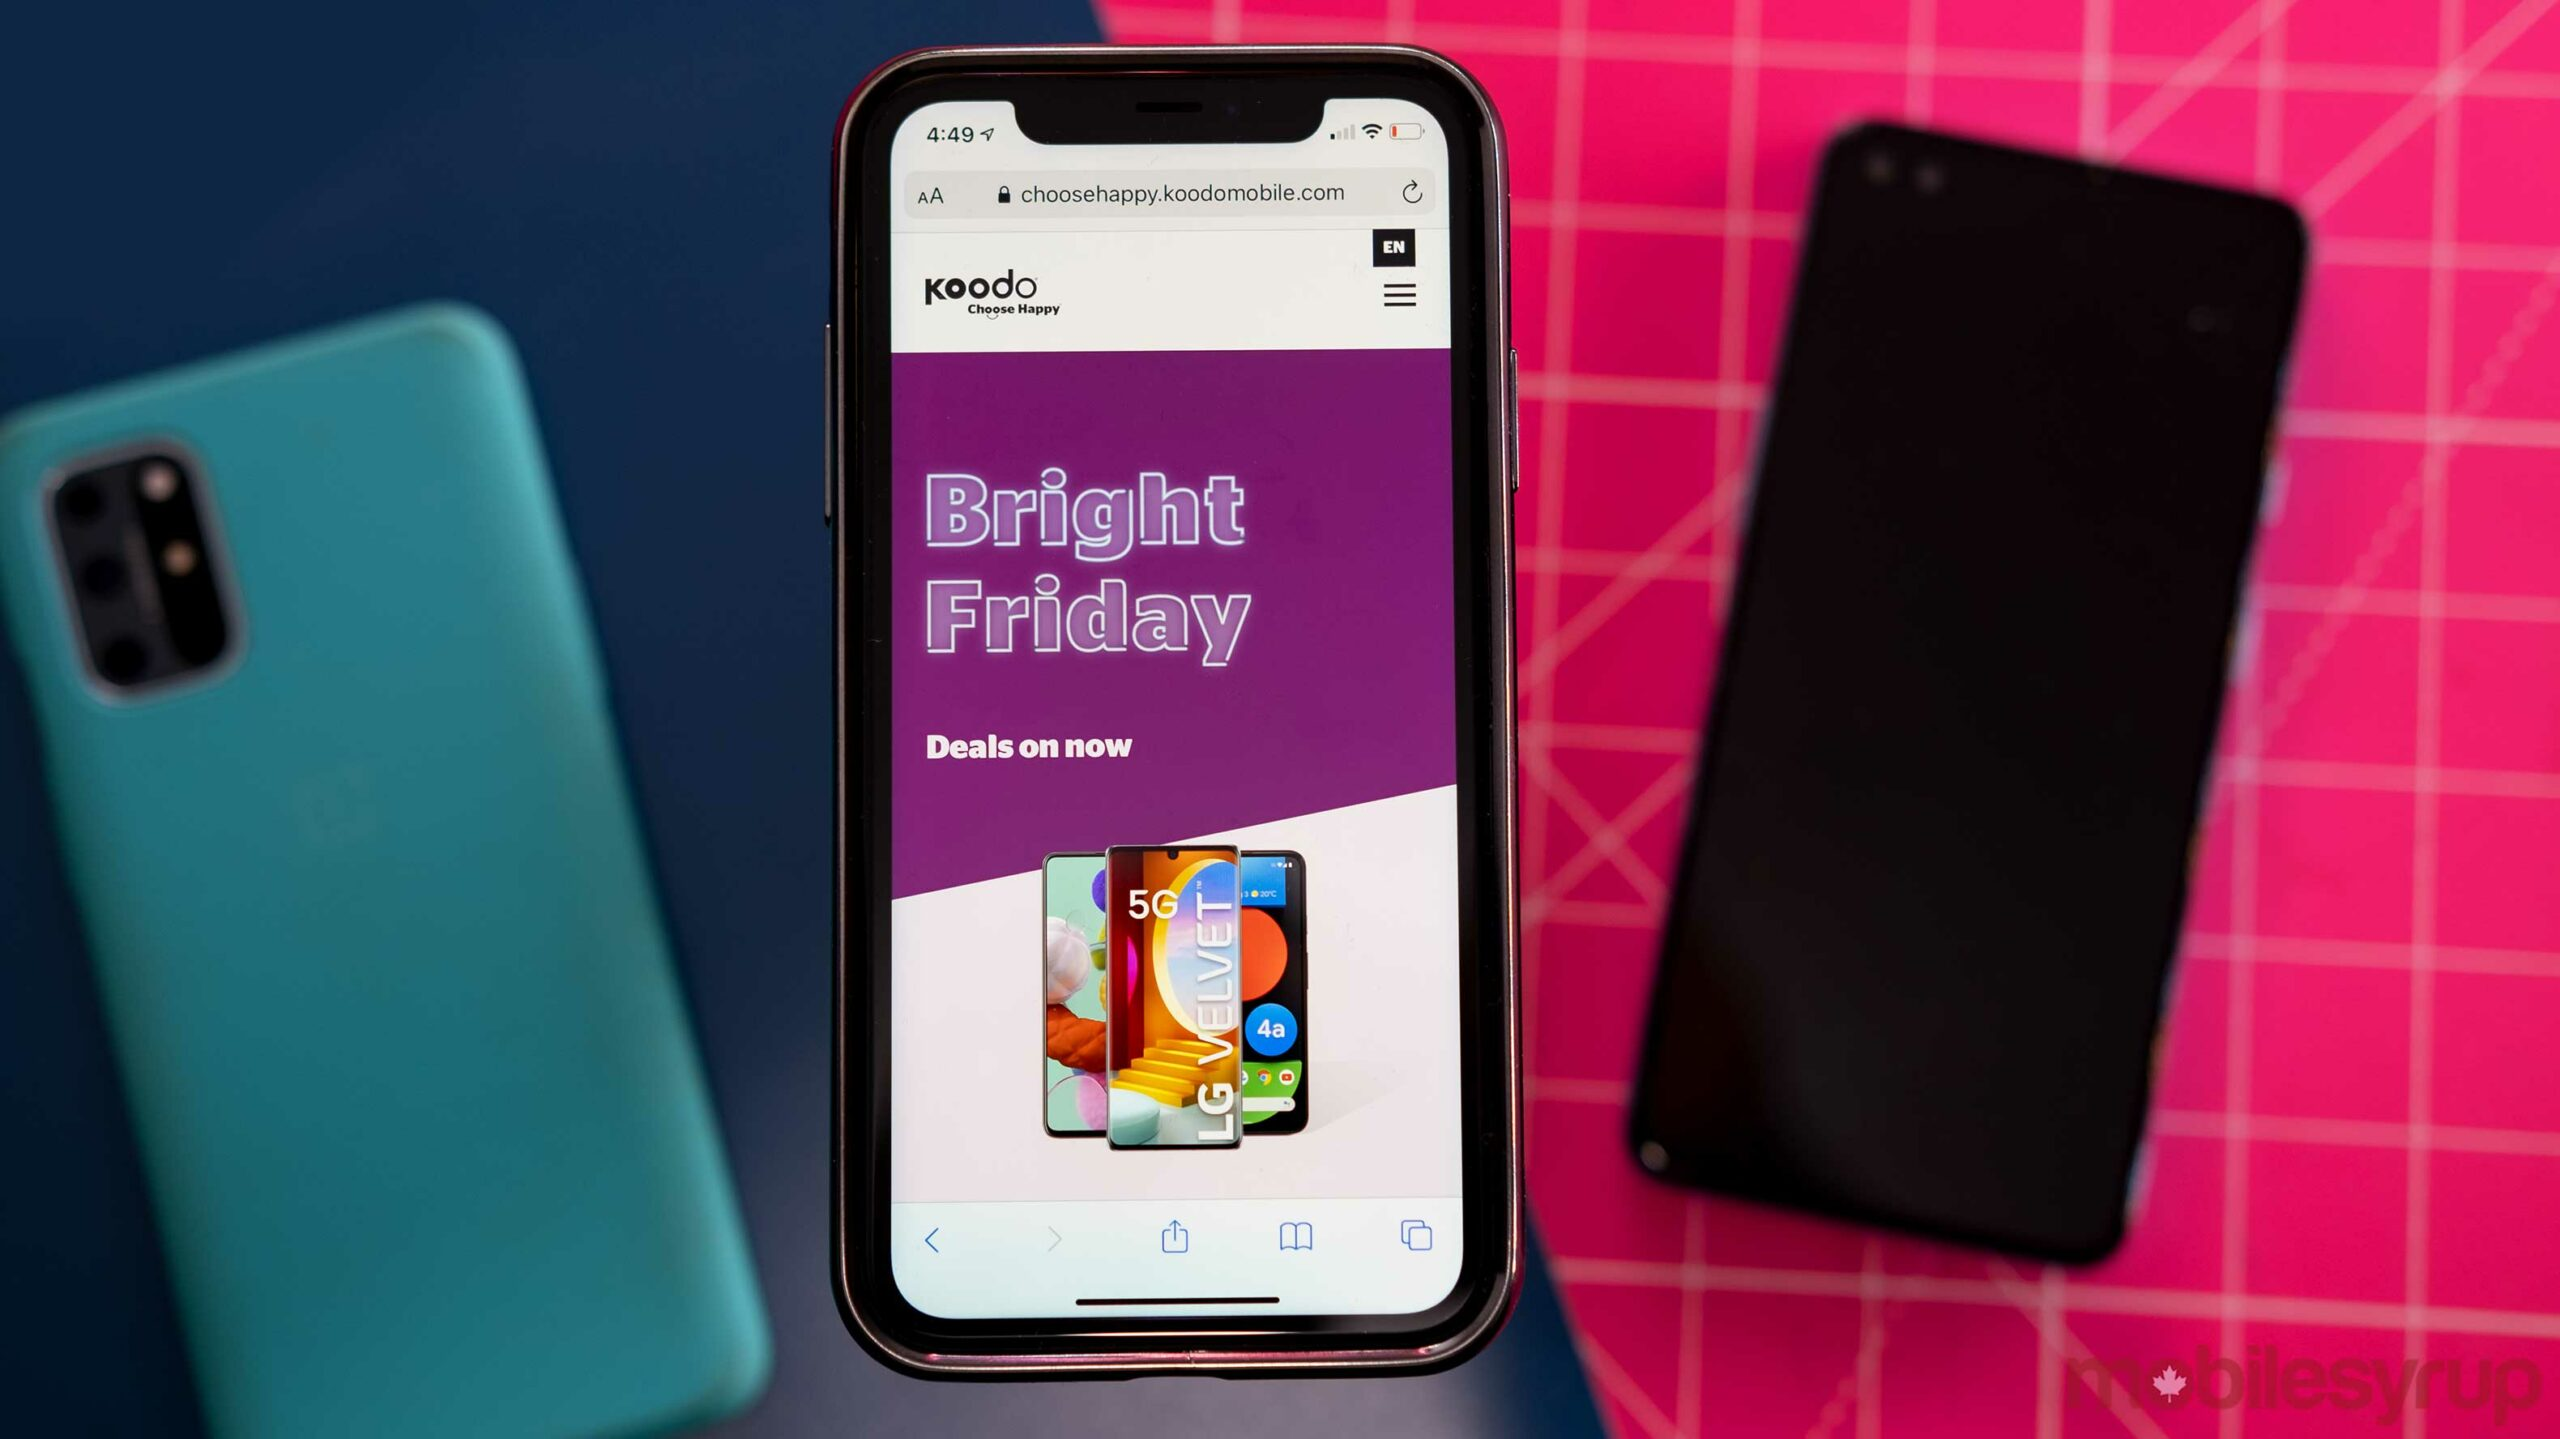 Koodo S Bright Friday Deals Include Smartphone Discounts And More